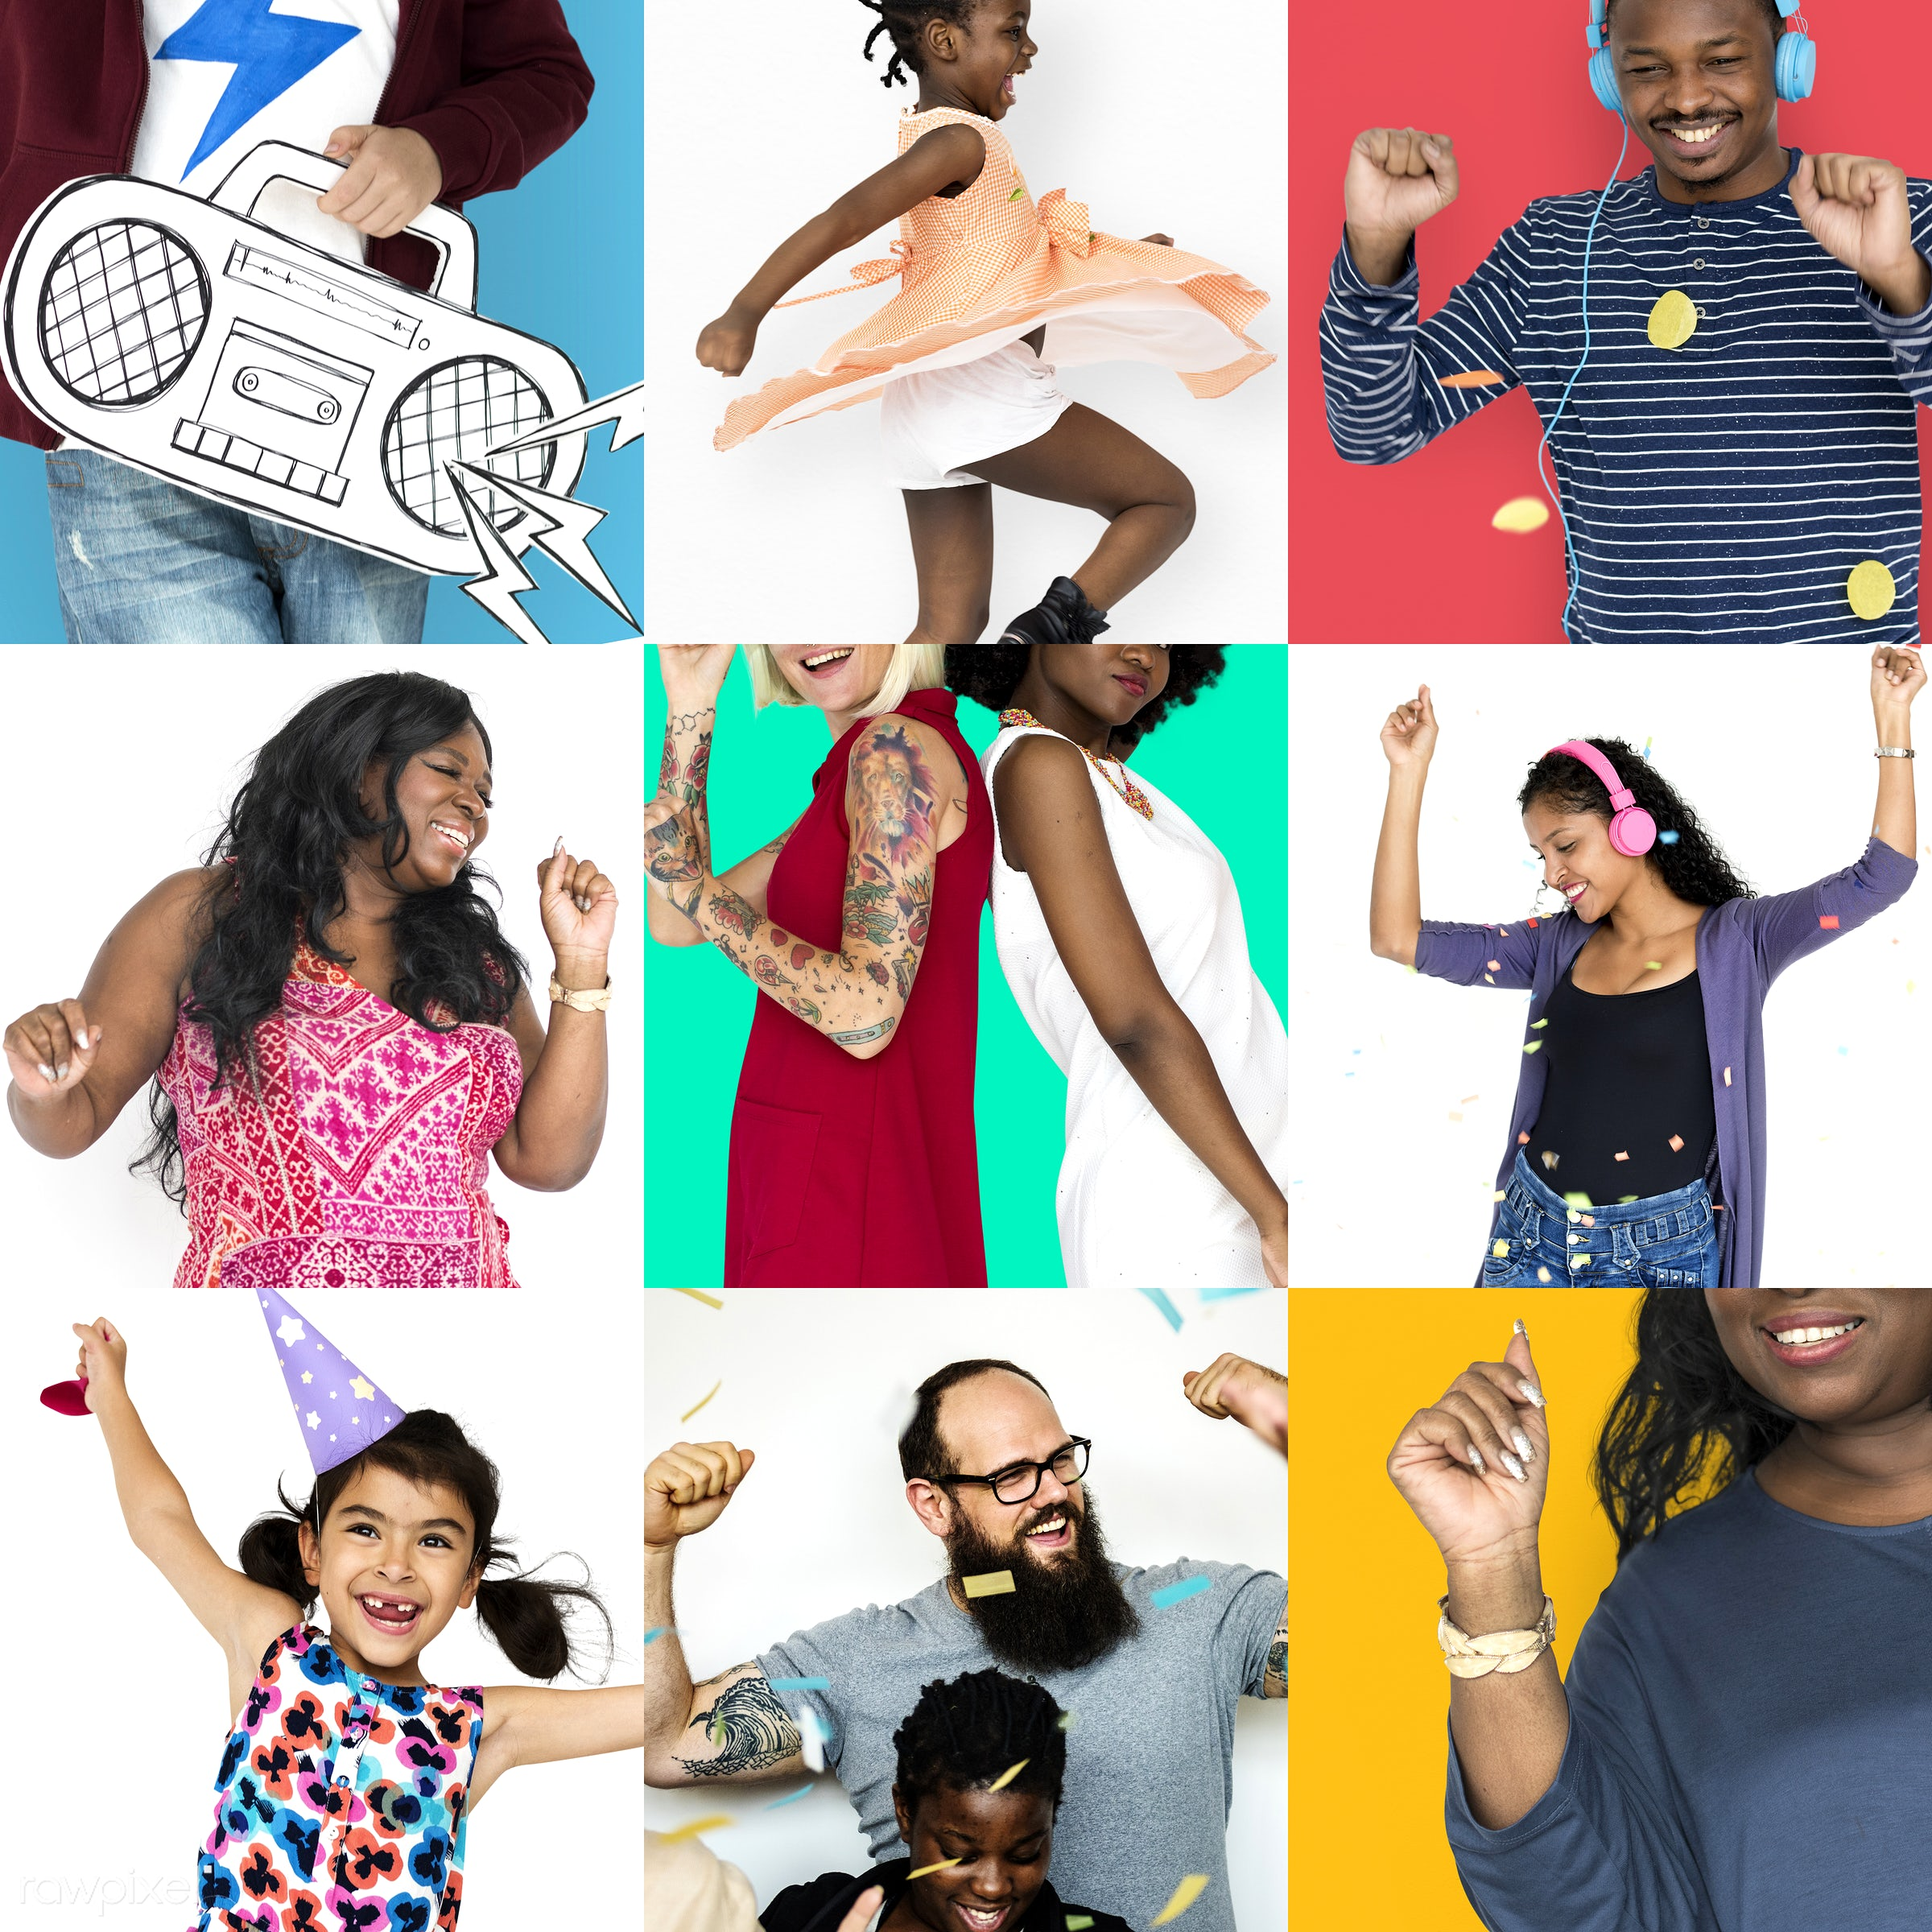 studio, dancing, person, relax, set, children, collection, people, positivity, kid, girl, woman, rhythm, collage, men, smile...